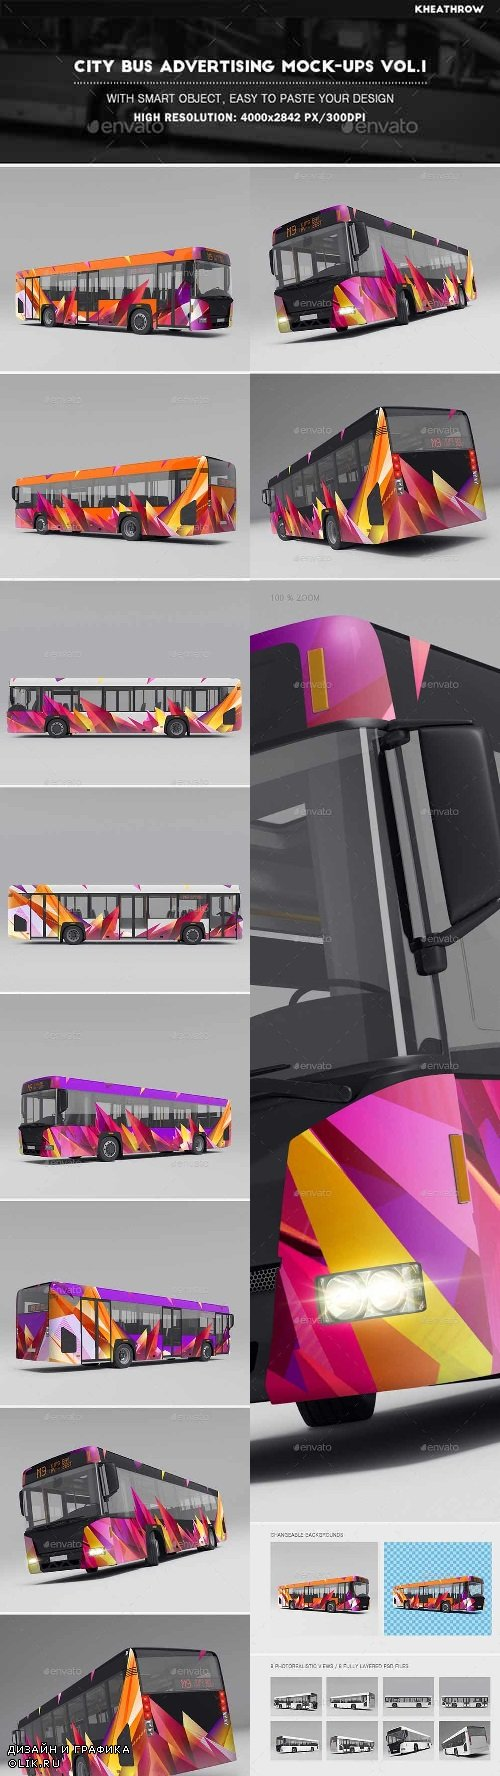 City Bus Advertising Mock-Ups Vol.1 - 20730427